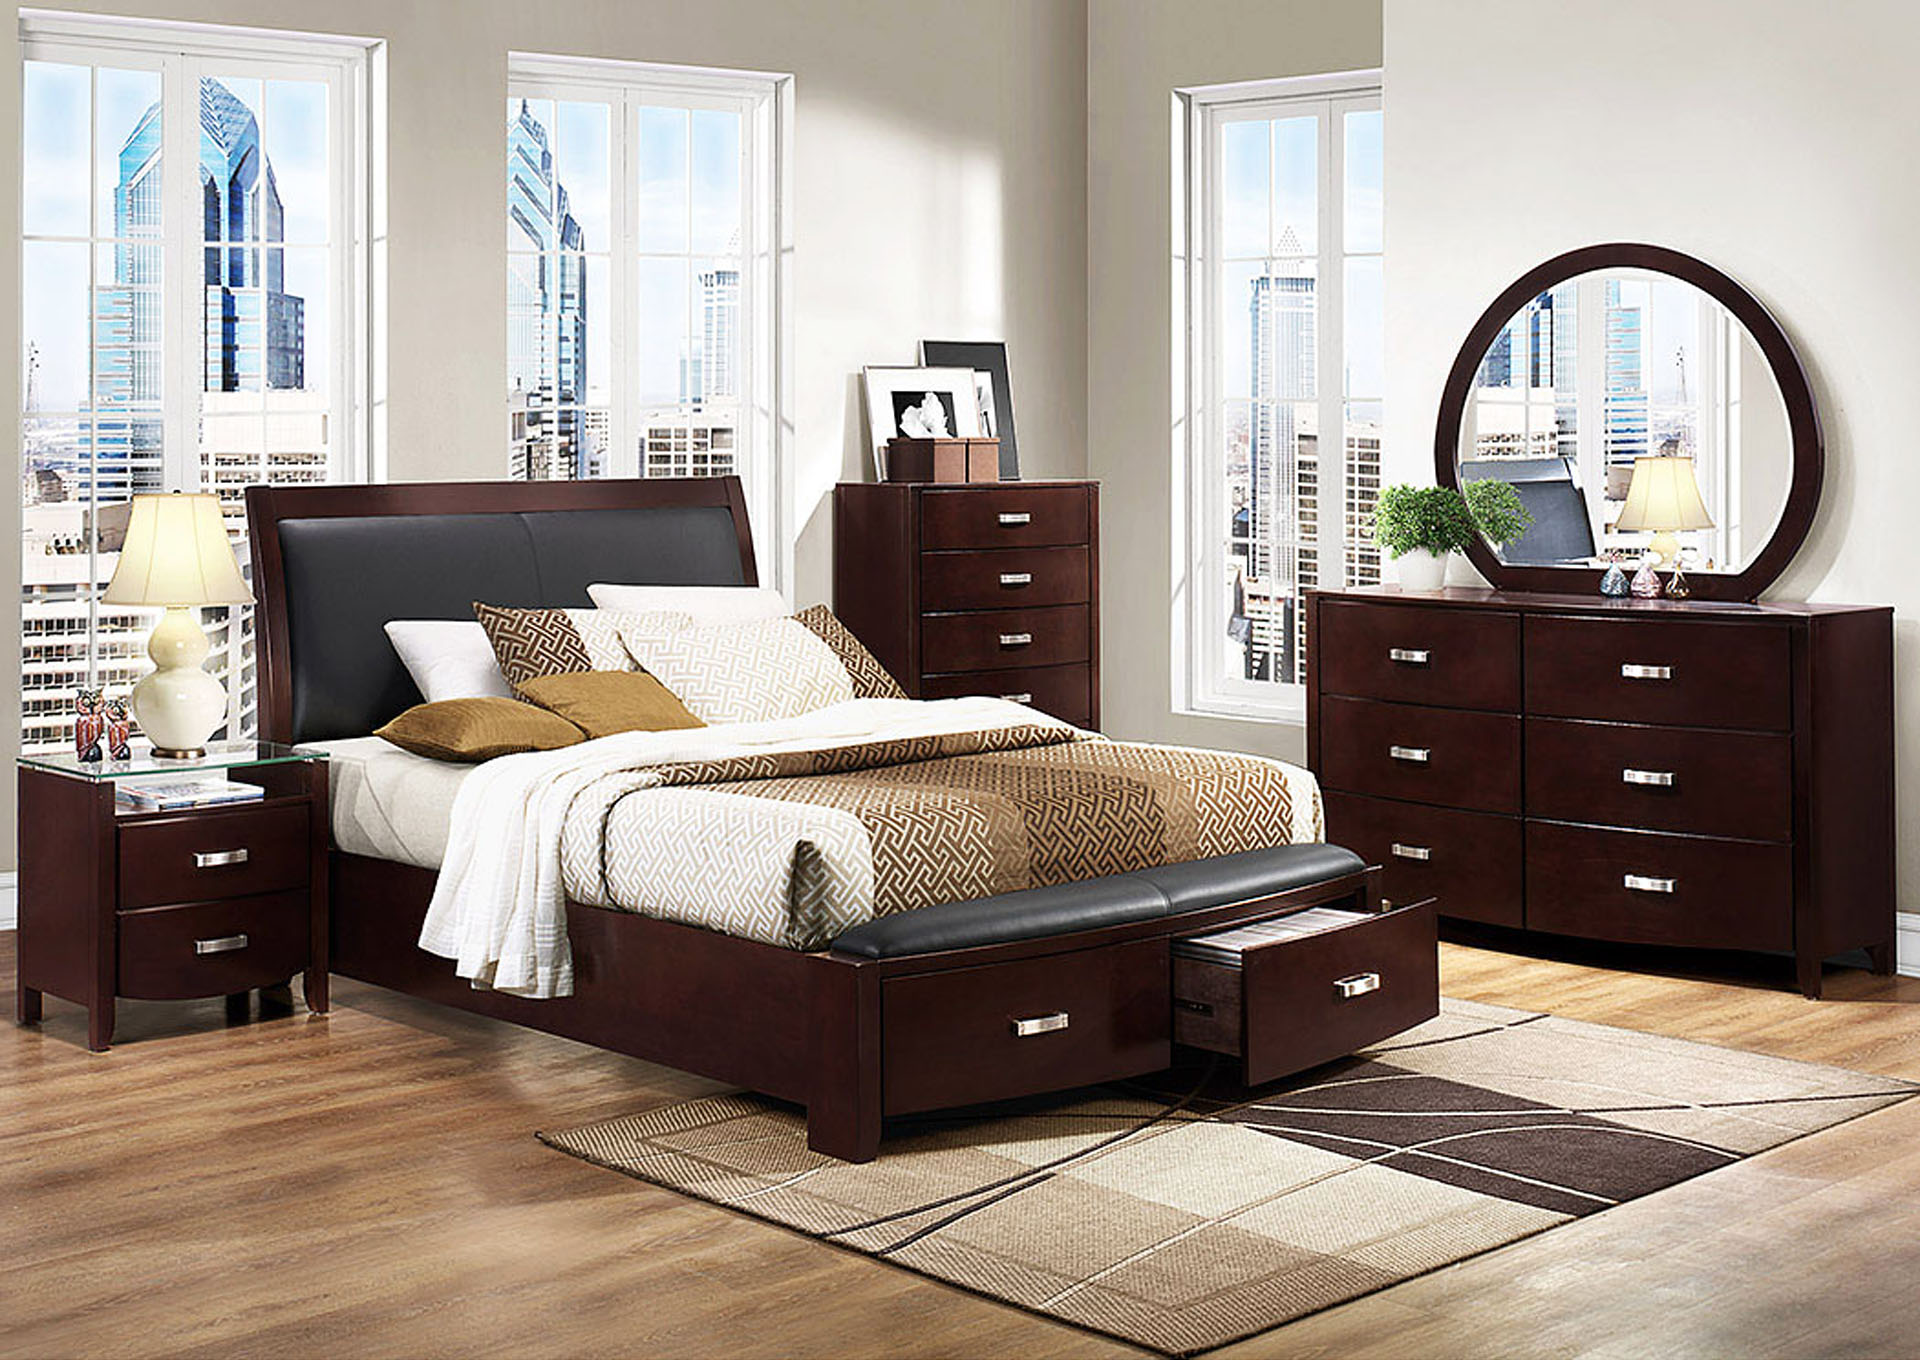 Lyric Dark Espresso California King Platform Storage Bed,Homelegance